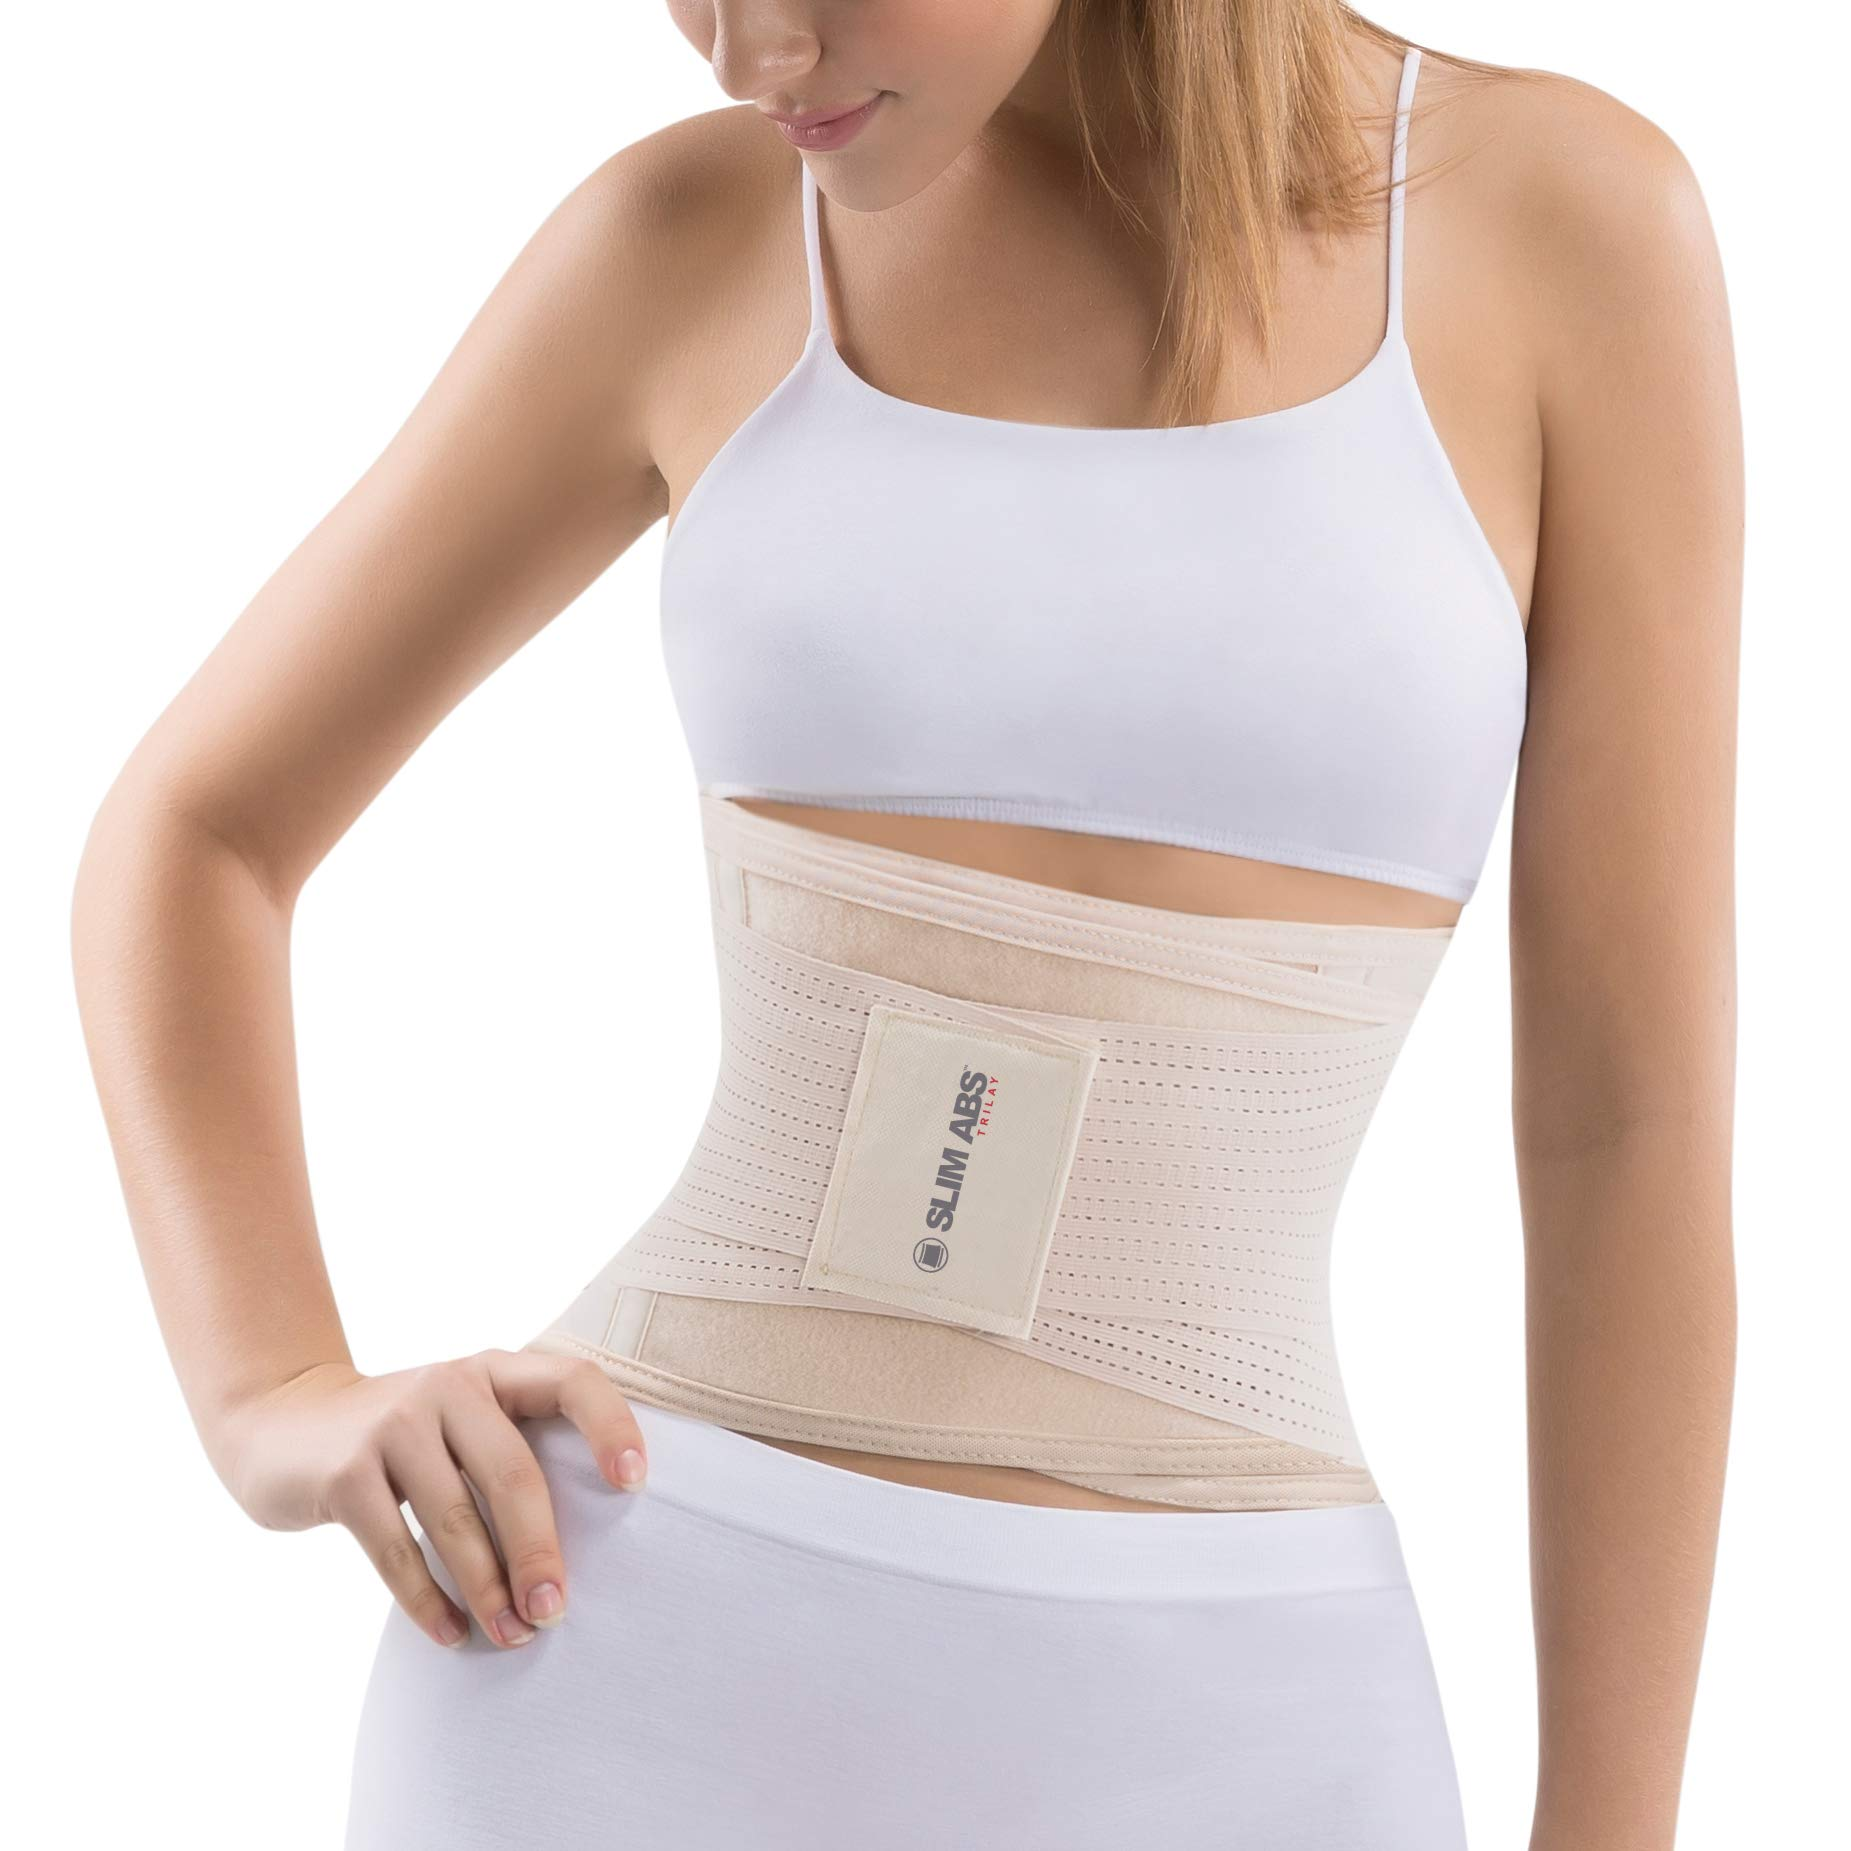 Slim Abs Waist Trainer Corset Belt with Slimming Cream - Waist Trimmer for Women and Thermogenic Workout Sweat Gel (Beige, S/M) by Slim Abs Trilay (Image #3)